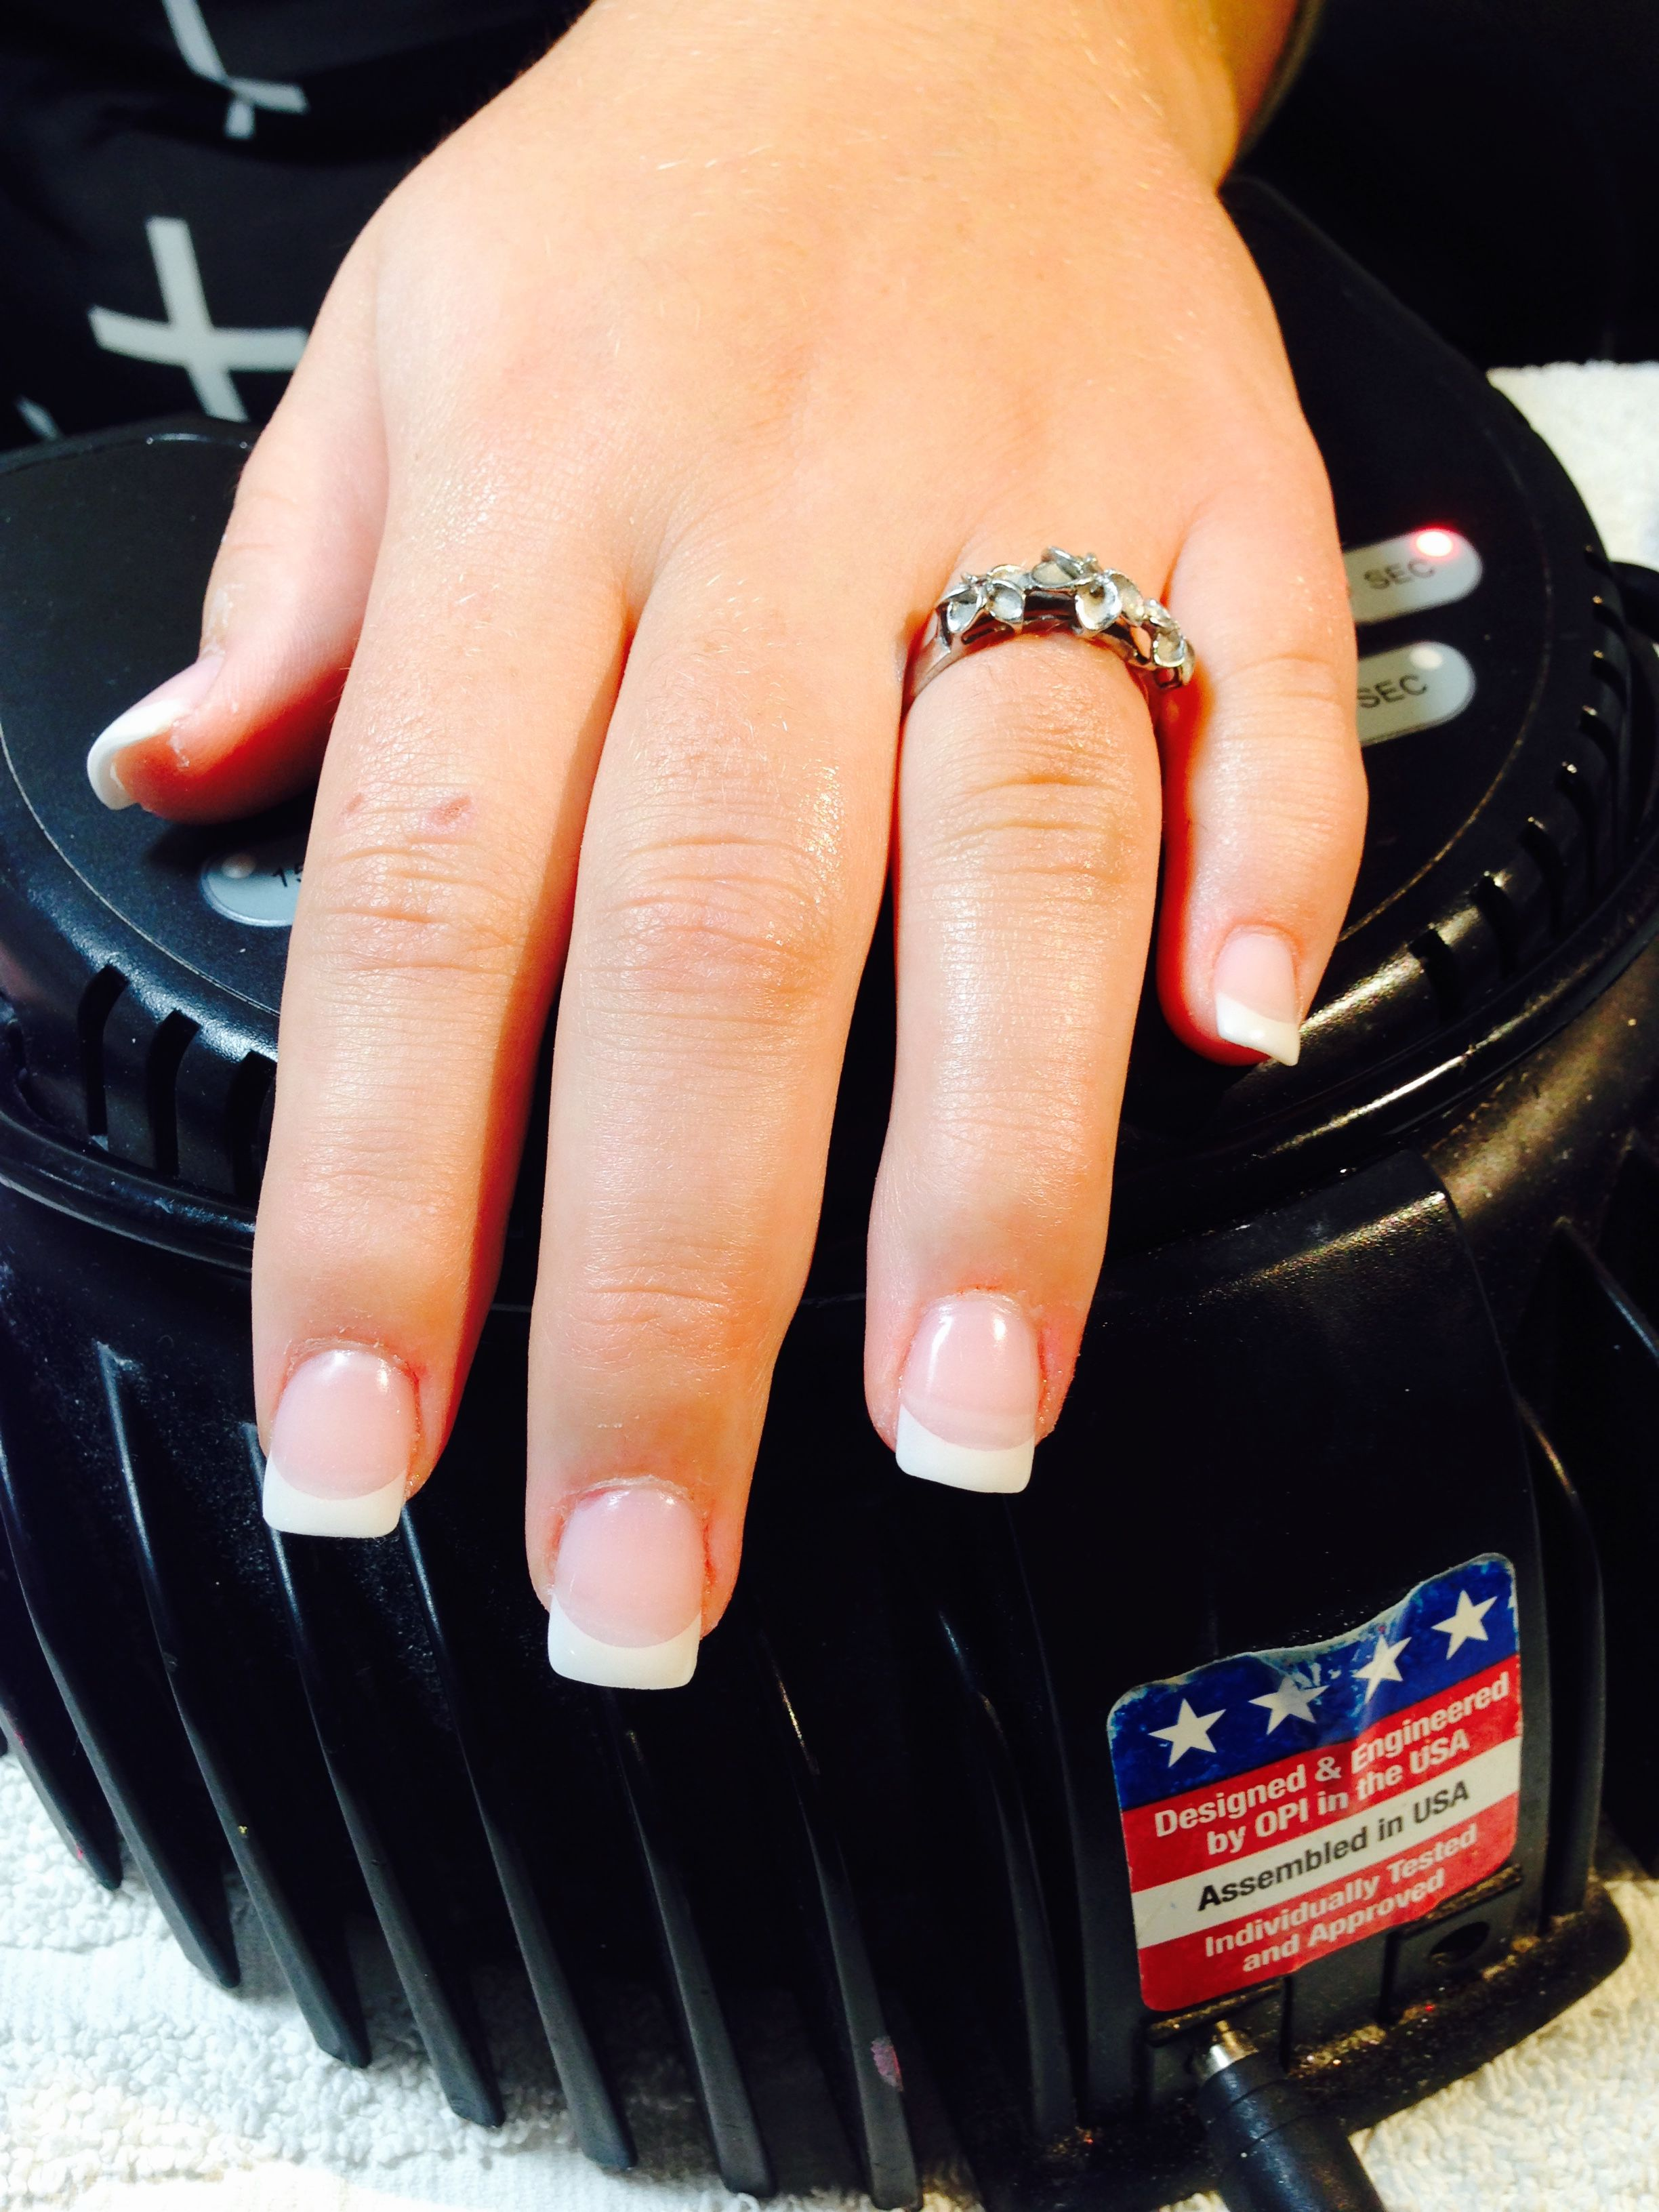 Pin by jackie duong on nail art glit and glam nails spa